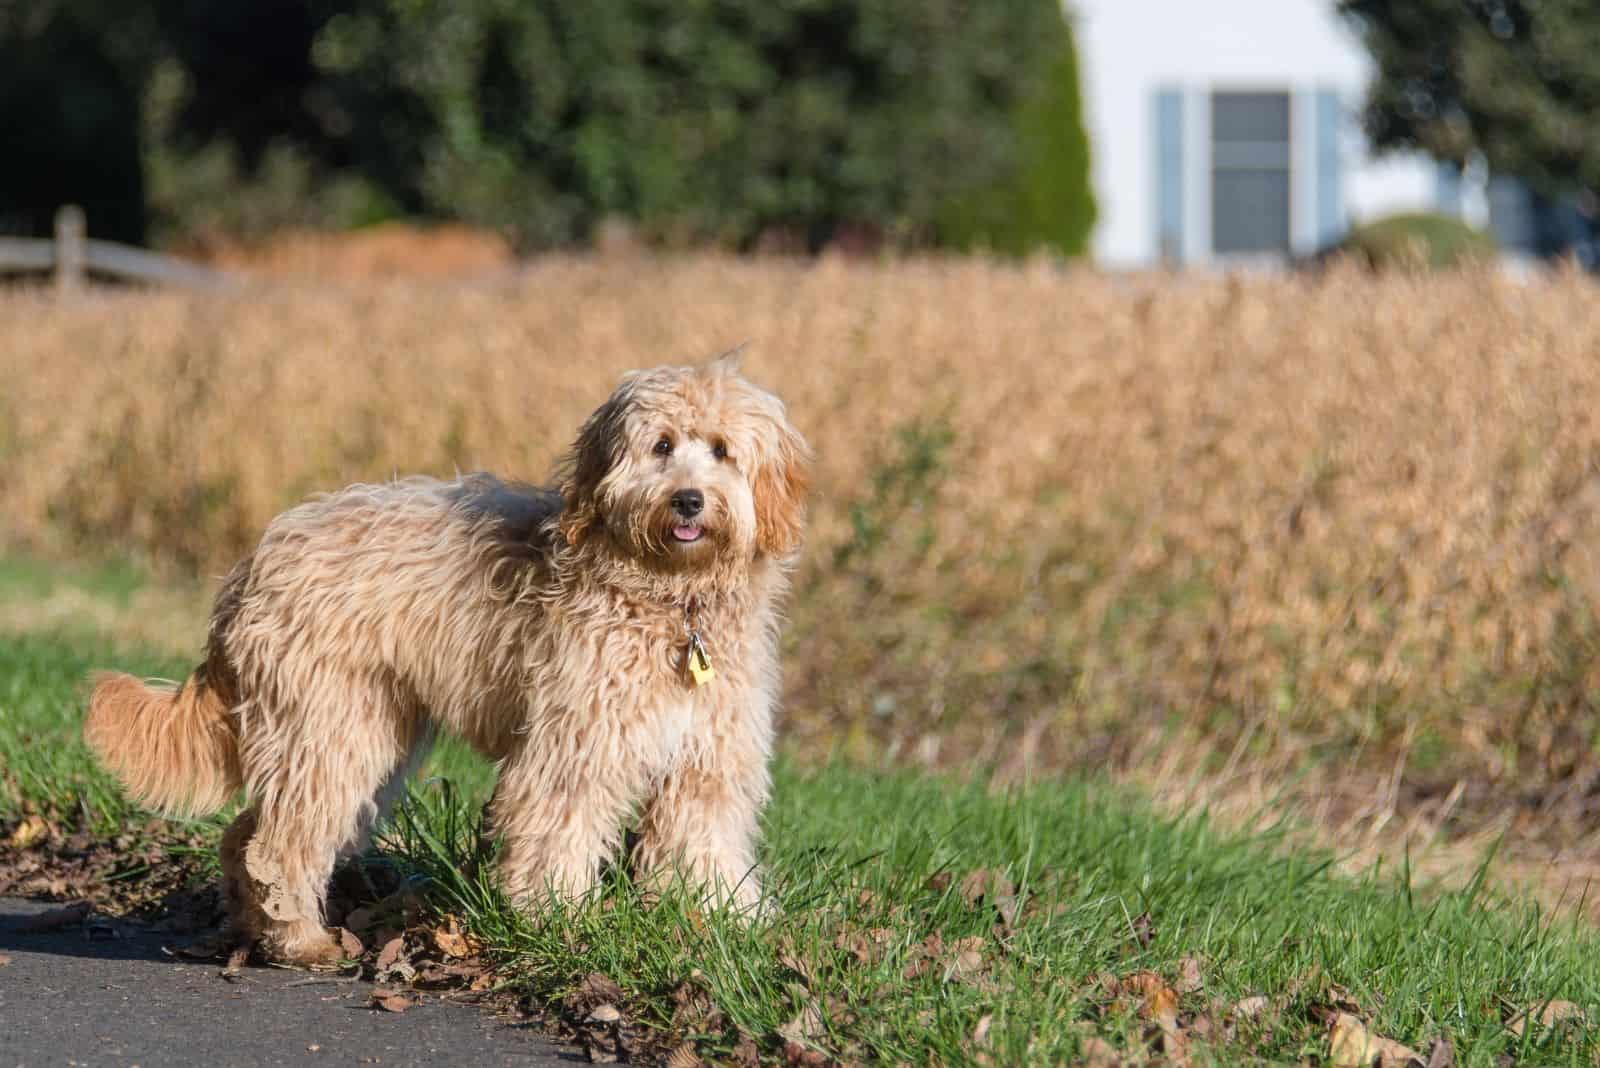 female mini goldendoodle f1b standing outdoors with dried grasses in the background